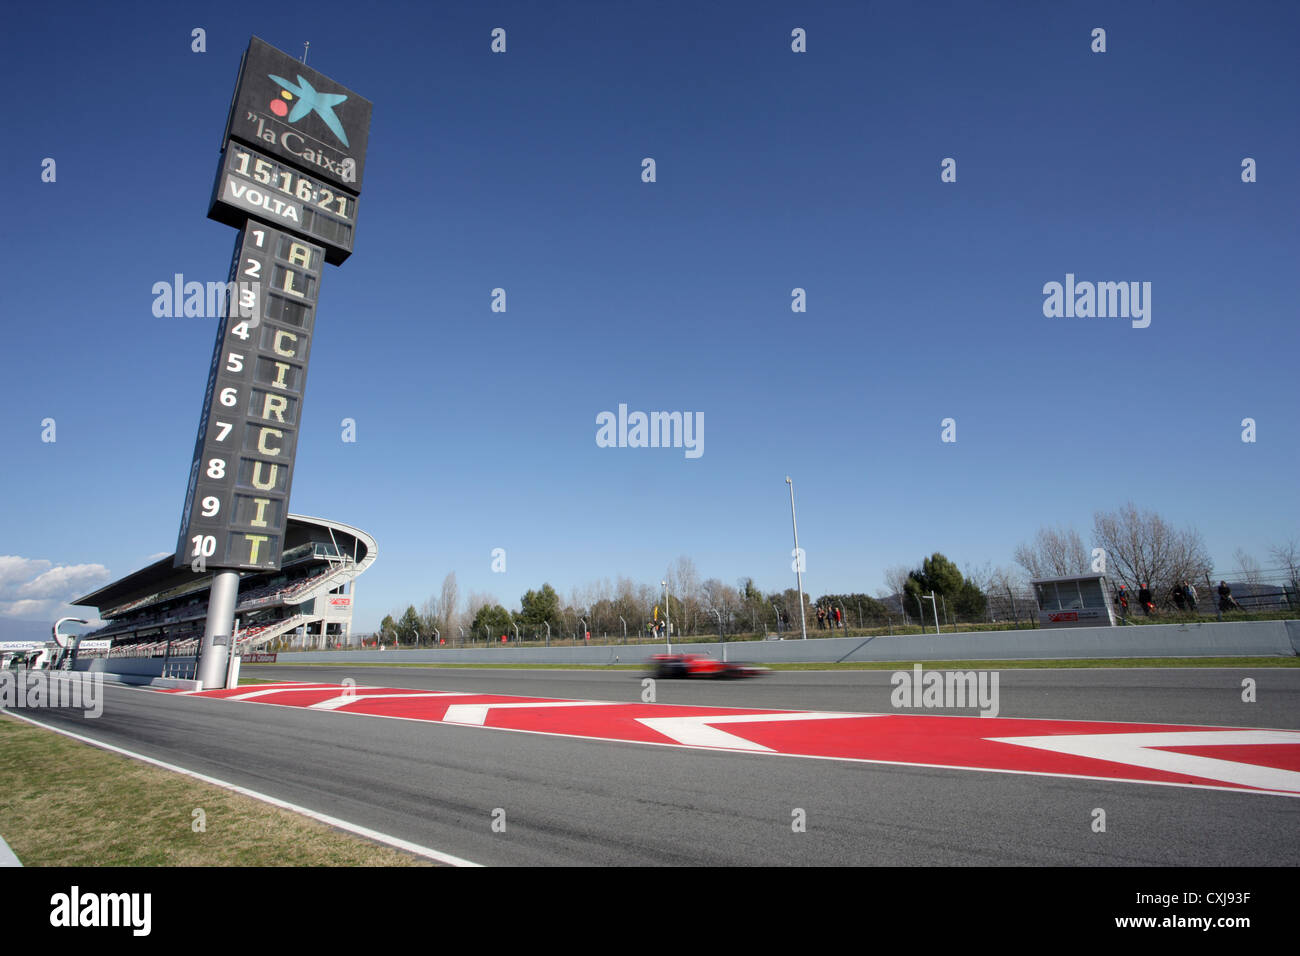 Moto racing stock photos moto racing stock images alamy for Camel motors on park and ajo